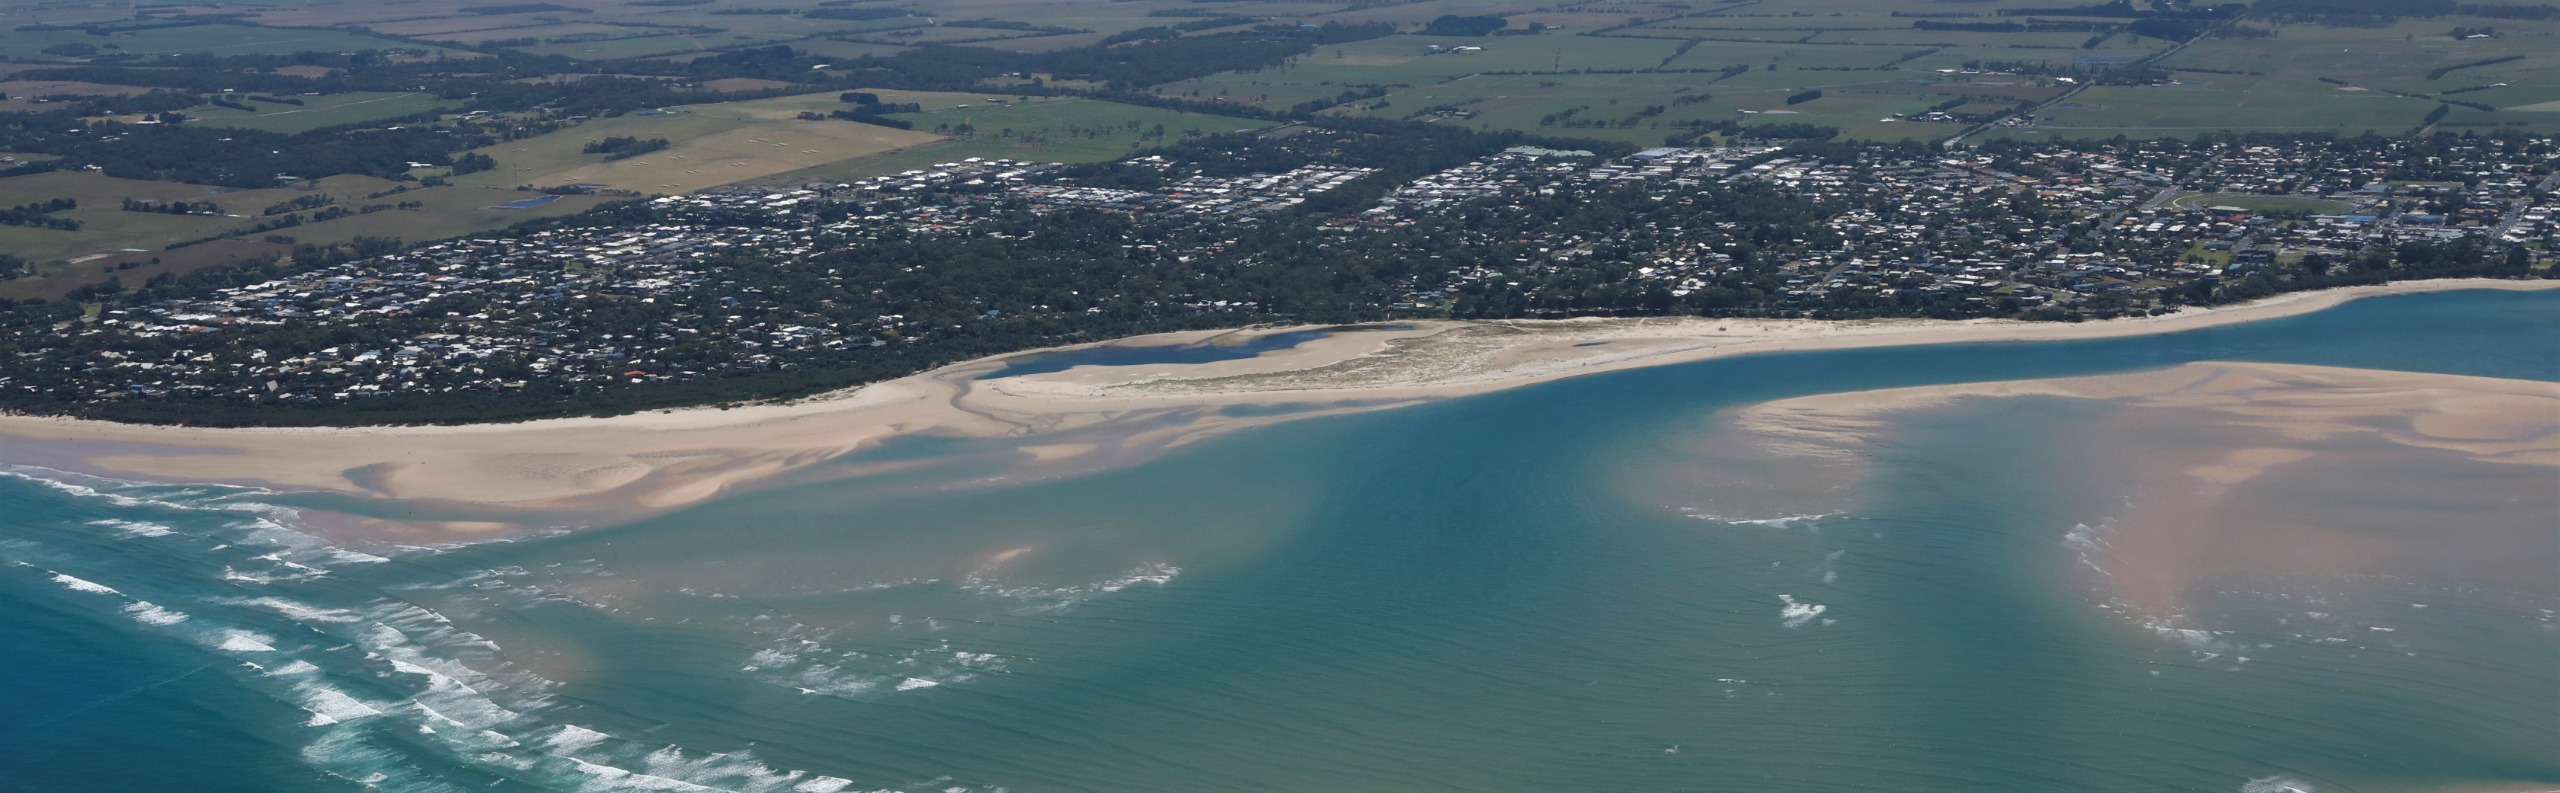 Aerial photo of coastline at Inverloch showing wave movement, beach and town